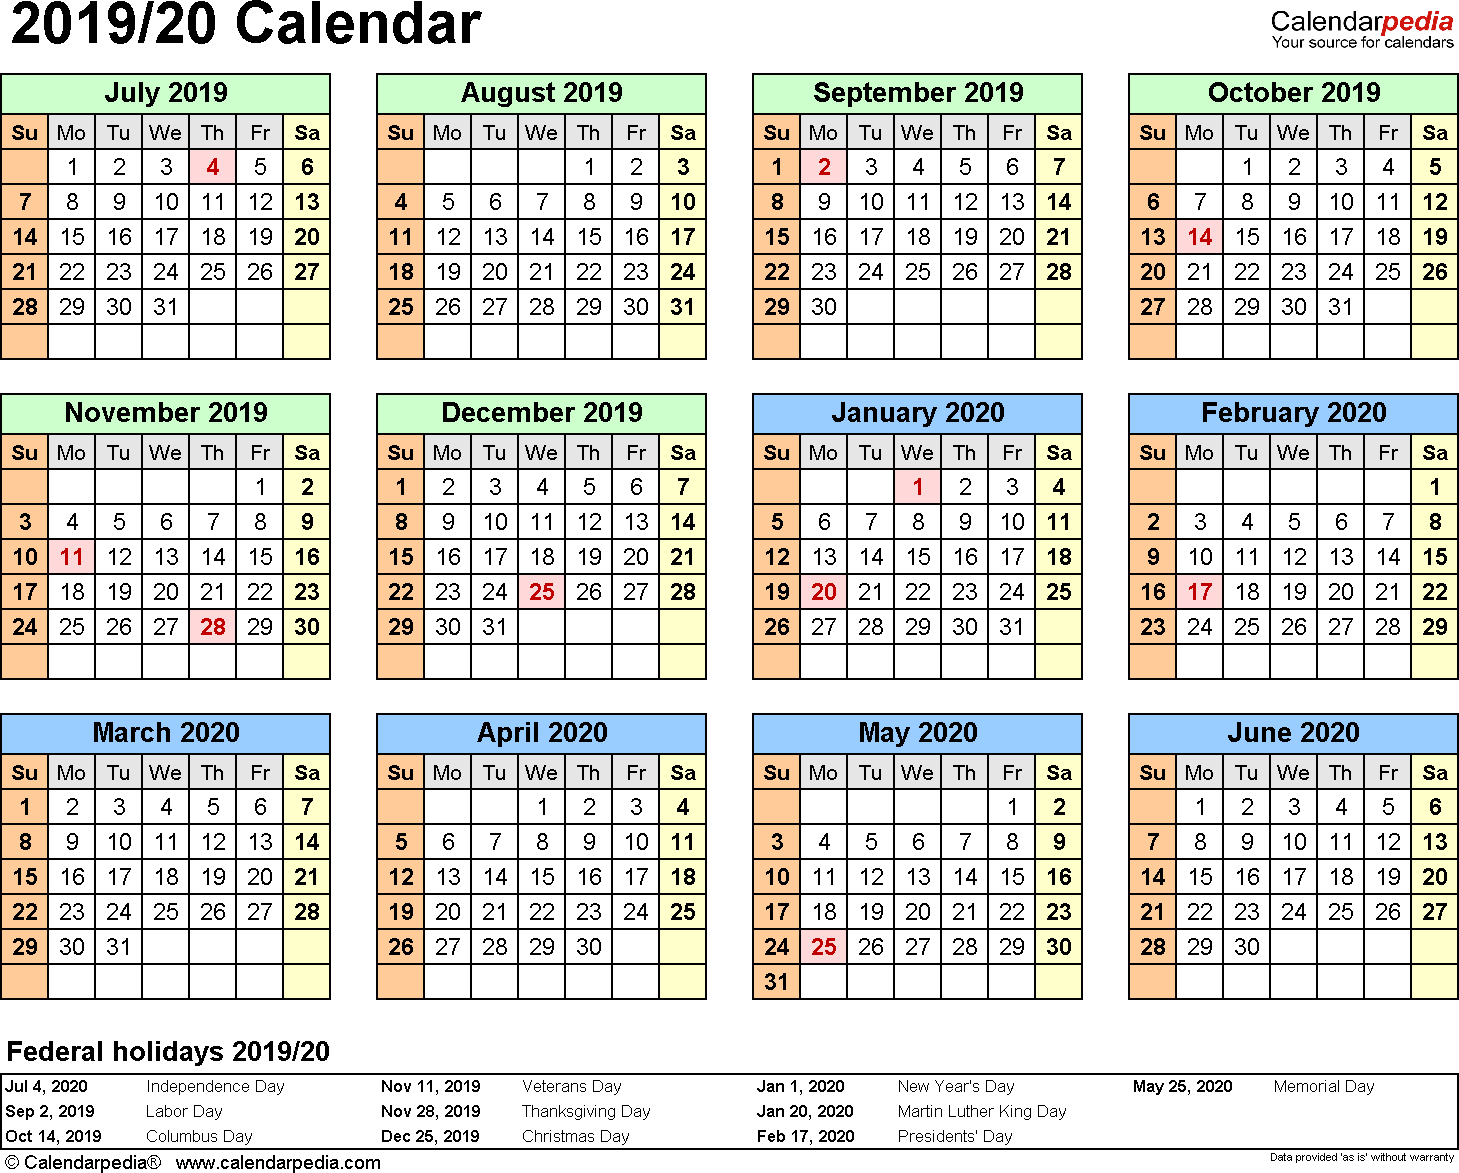 Split Year Calendar 2019/20 (July To June) - Pdf Templates inside Year At A Glance Calendar 2019-2020